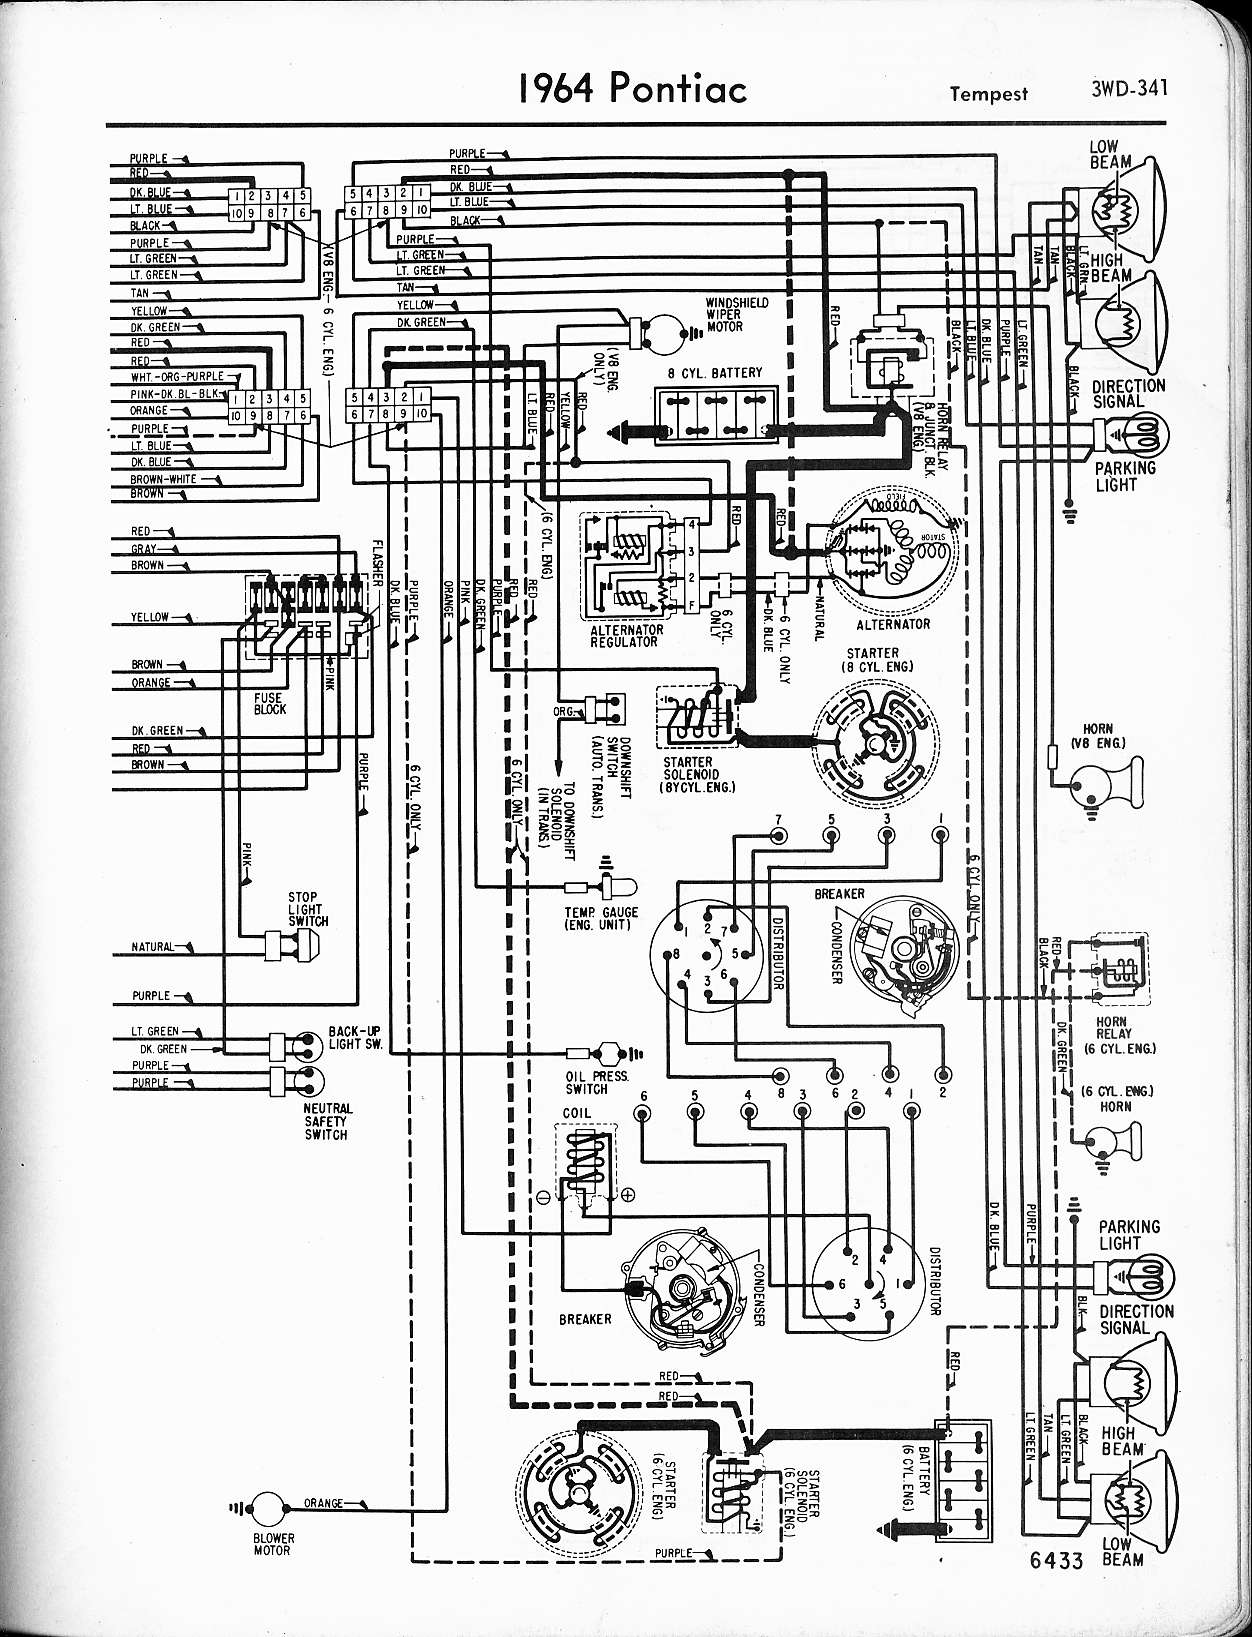 1971 Pontiac Lemans Wiring Diagram Opinions About For 67 Images Gallery